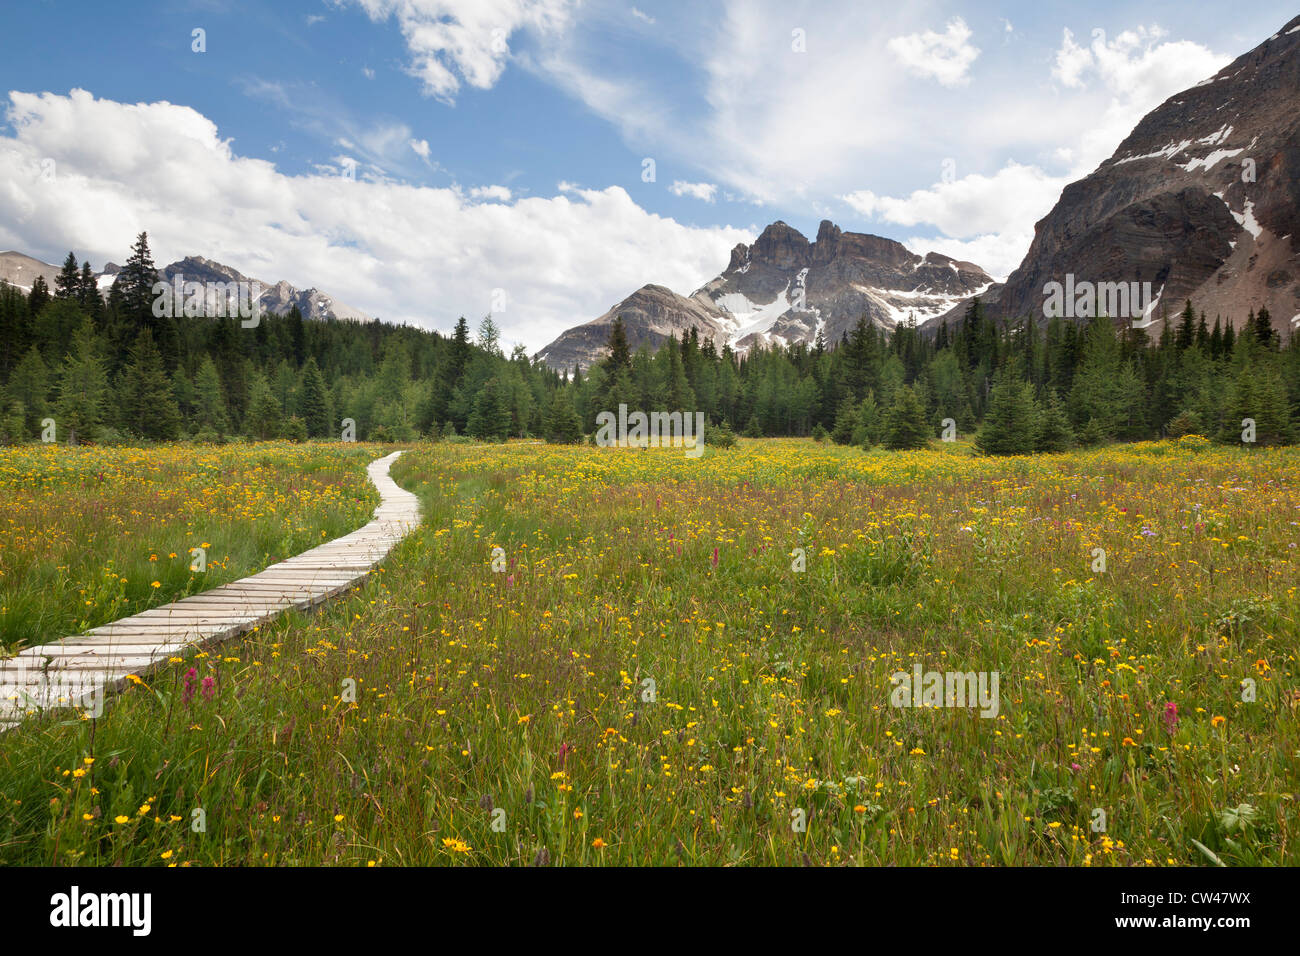 Canada, Mount Assiniboine Provincial Park, Meadows from Naiset cabins to Gog Lake Stock Photo